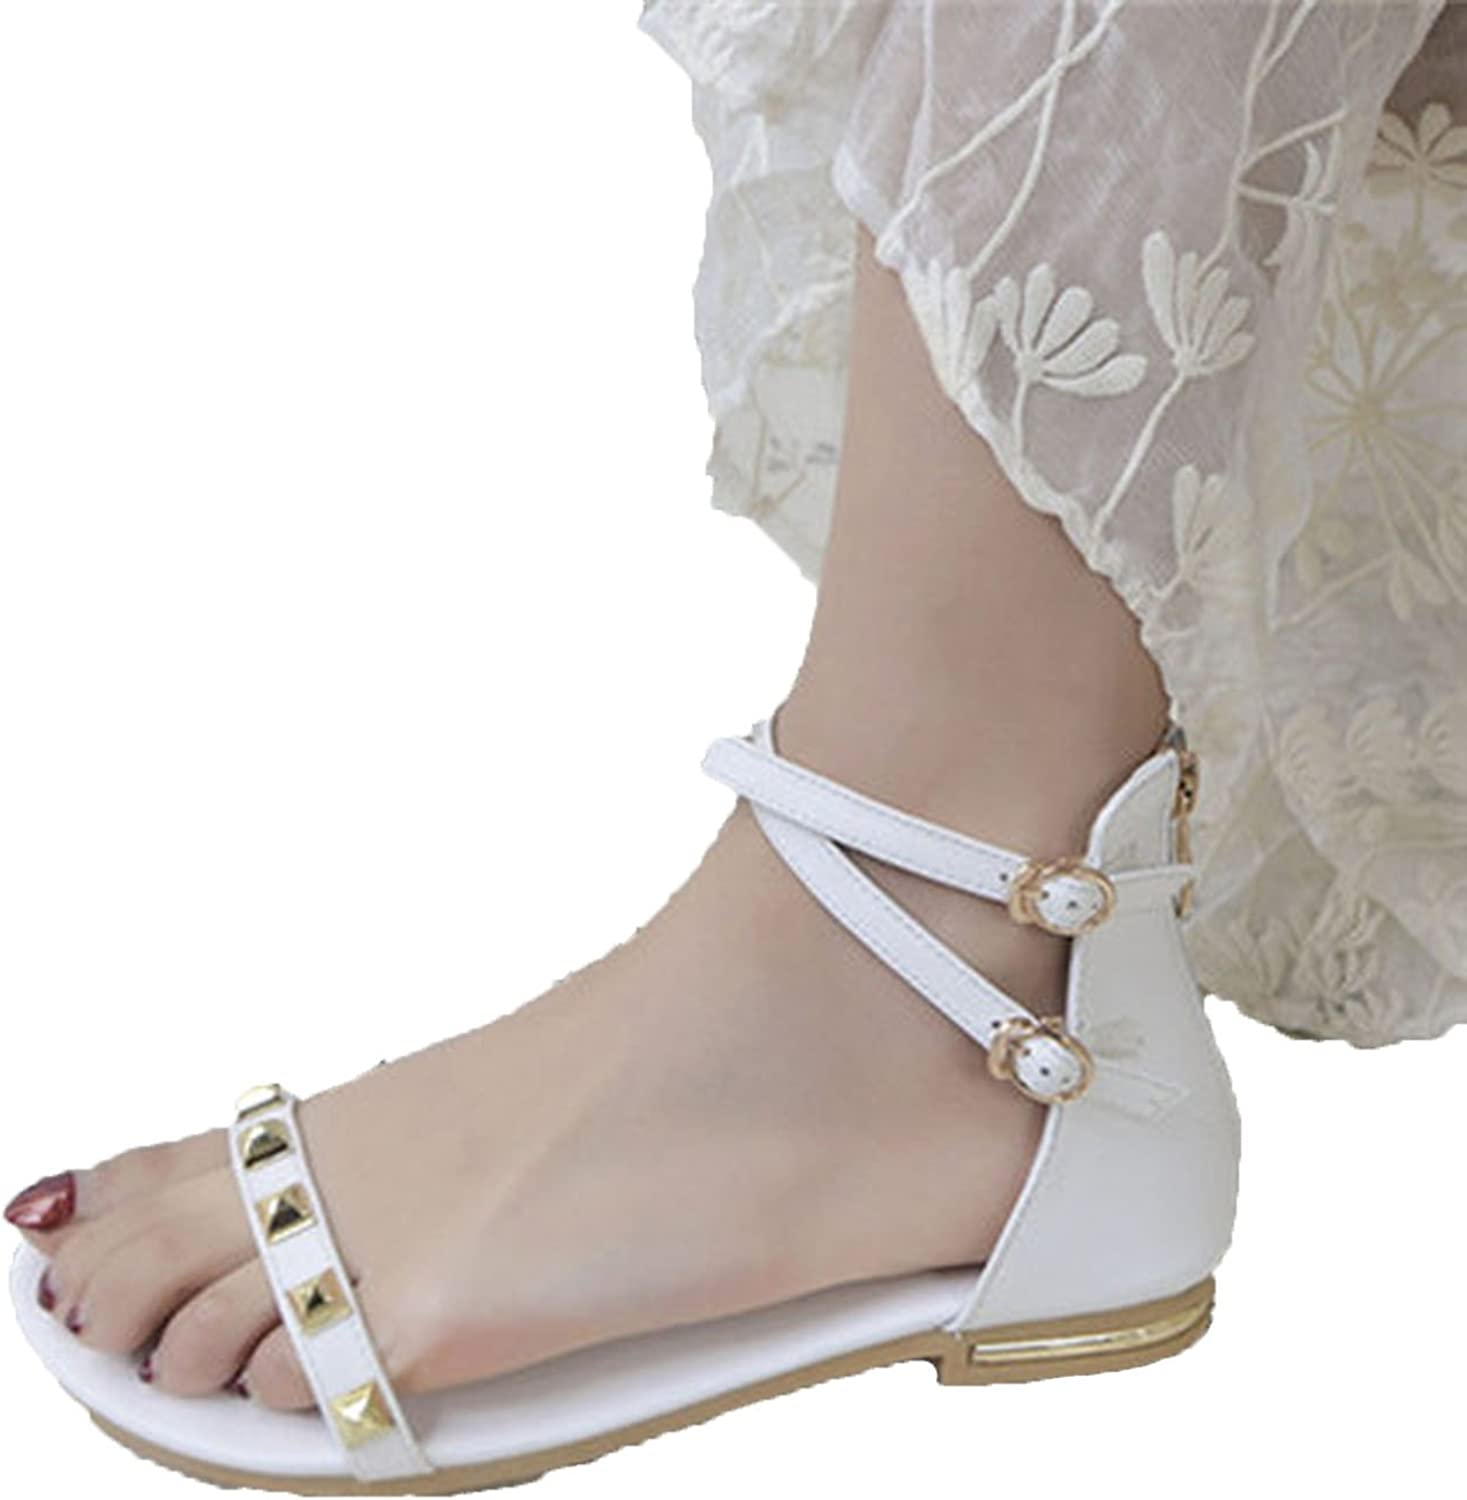 Running-sun Women's Sandals Ankle Strap Zip Genuine Leather Summer Flat shoes Woman Sandals with Rivet